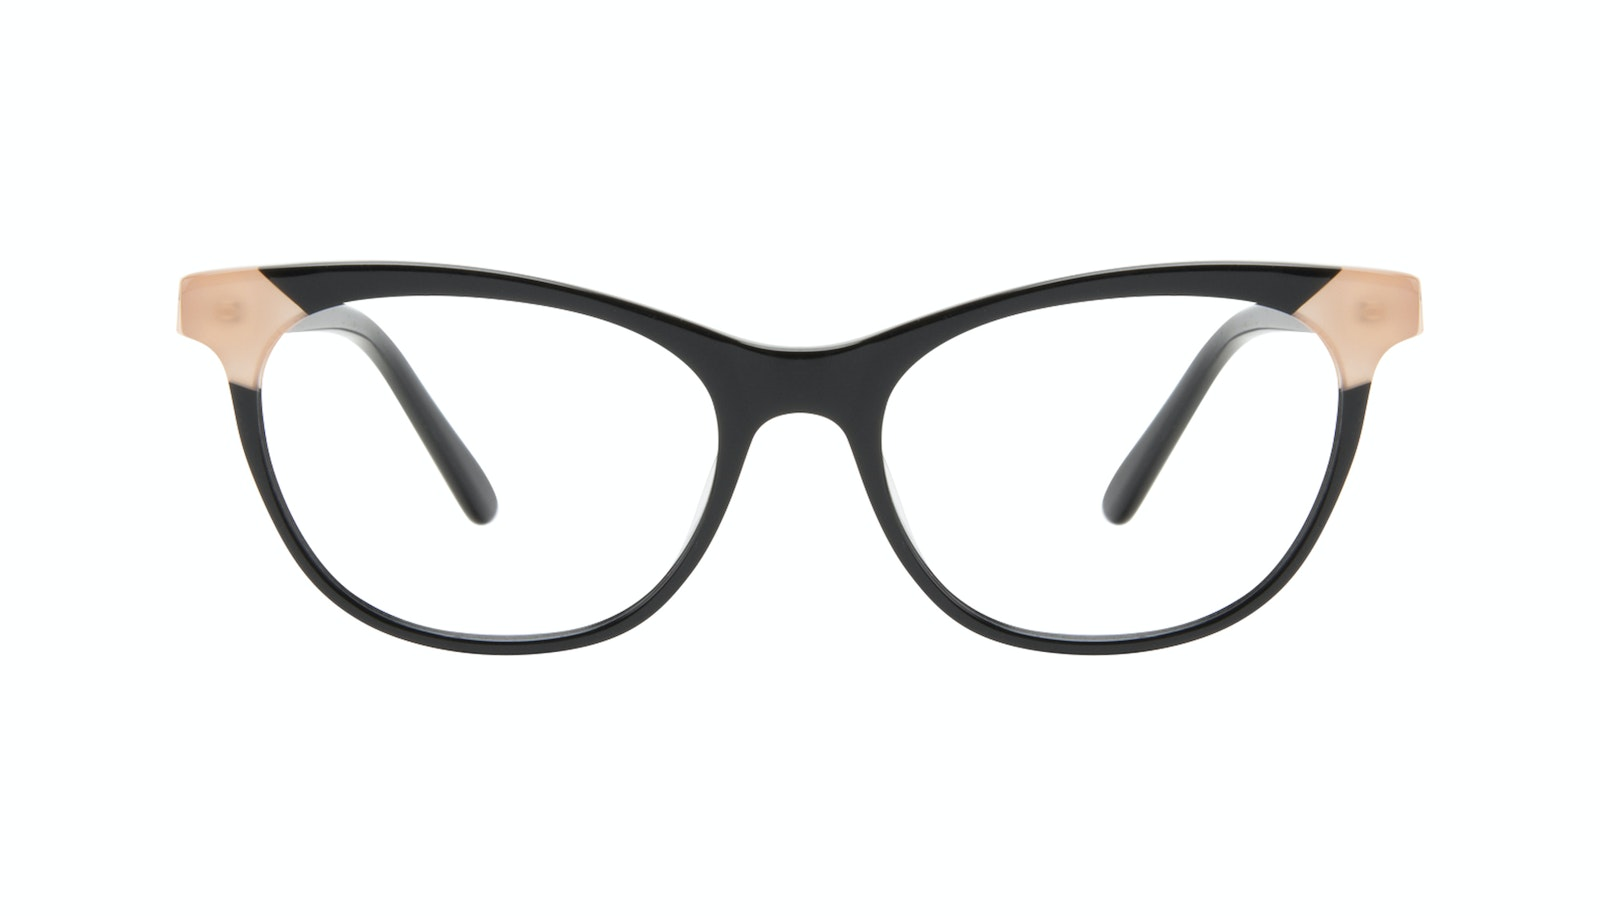 Affordable Fashion Glasses Cat Eye Eyeglasses Women Witty Black Ivory